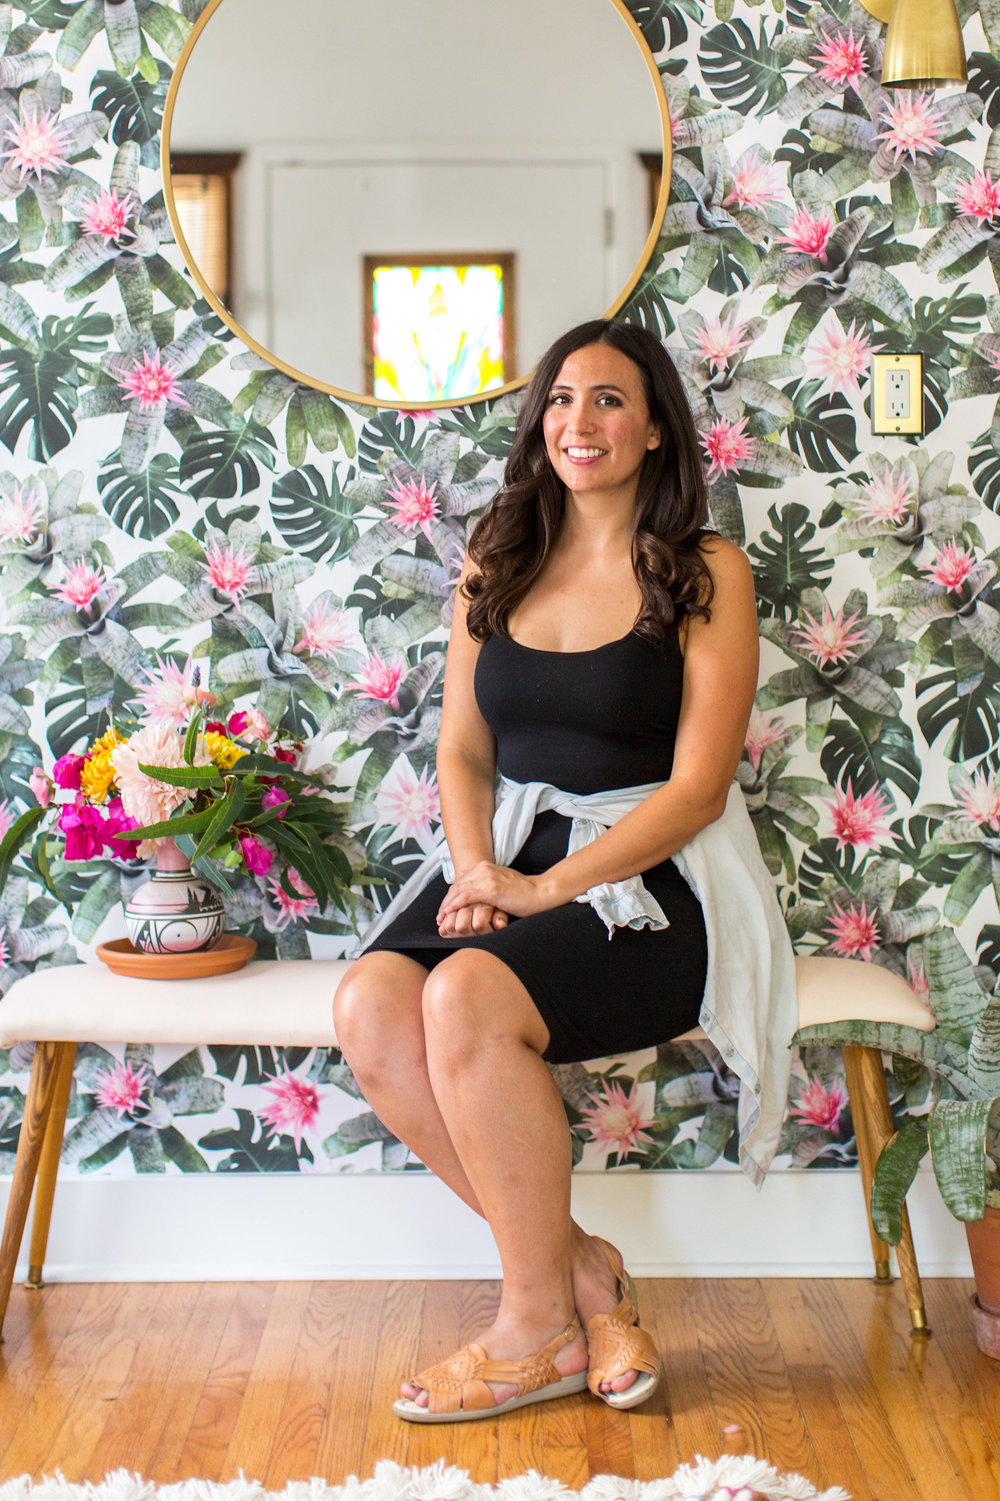 need creative services?I can help. -